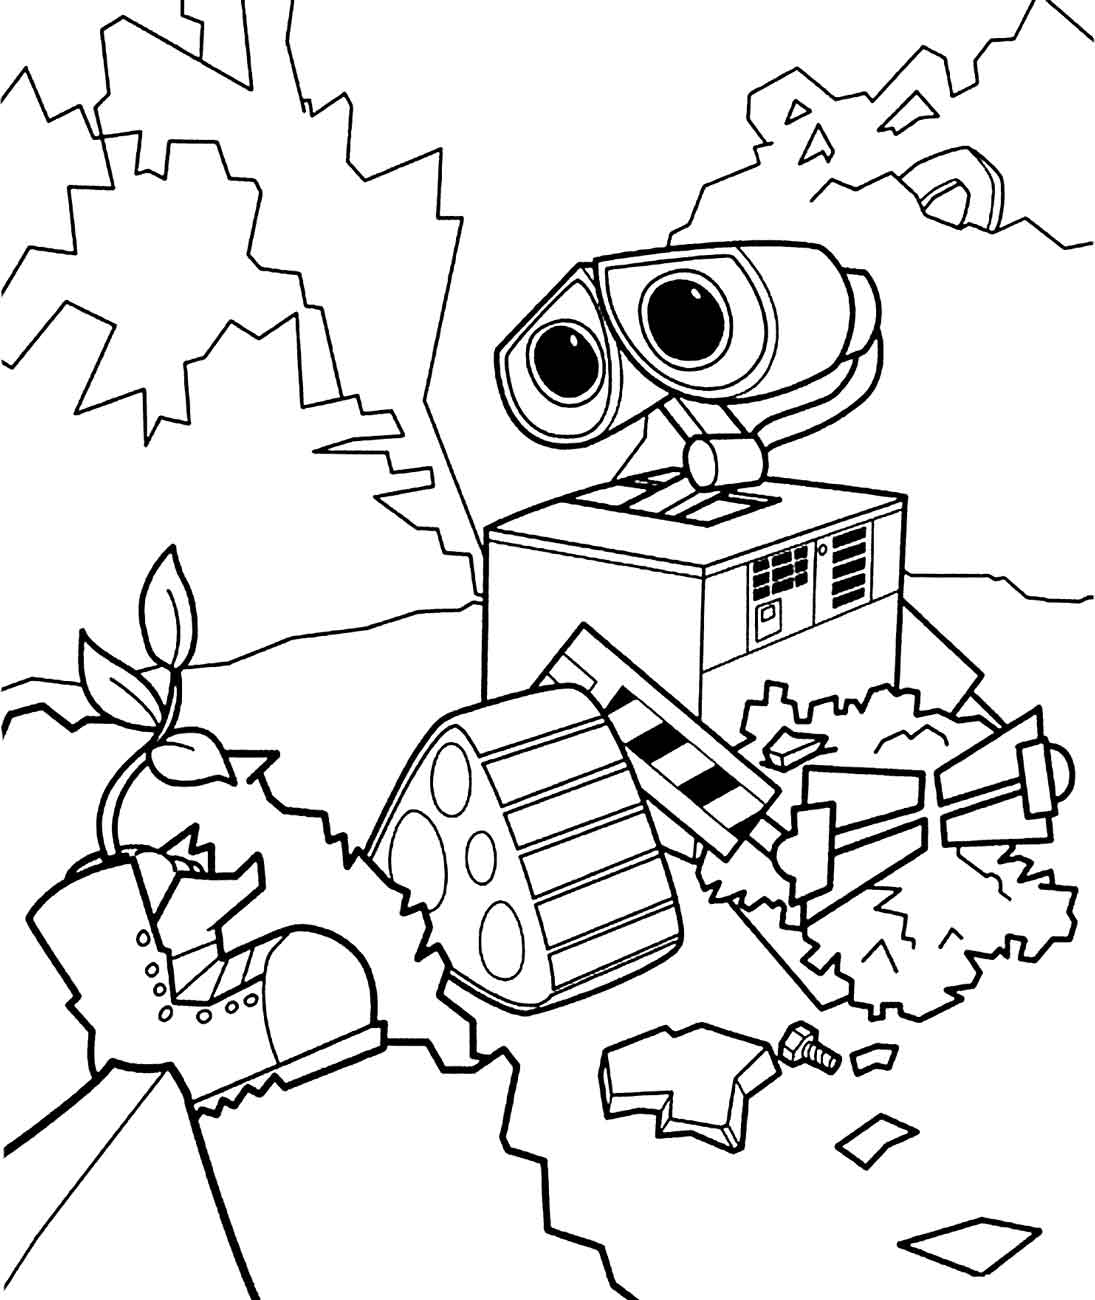 Robot Coloring Pages For Kids 18 Funnycrafts